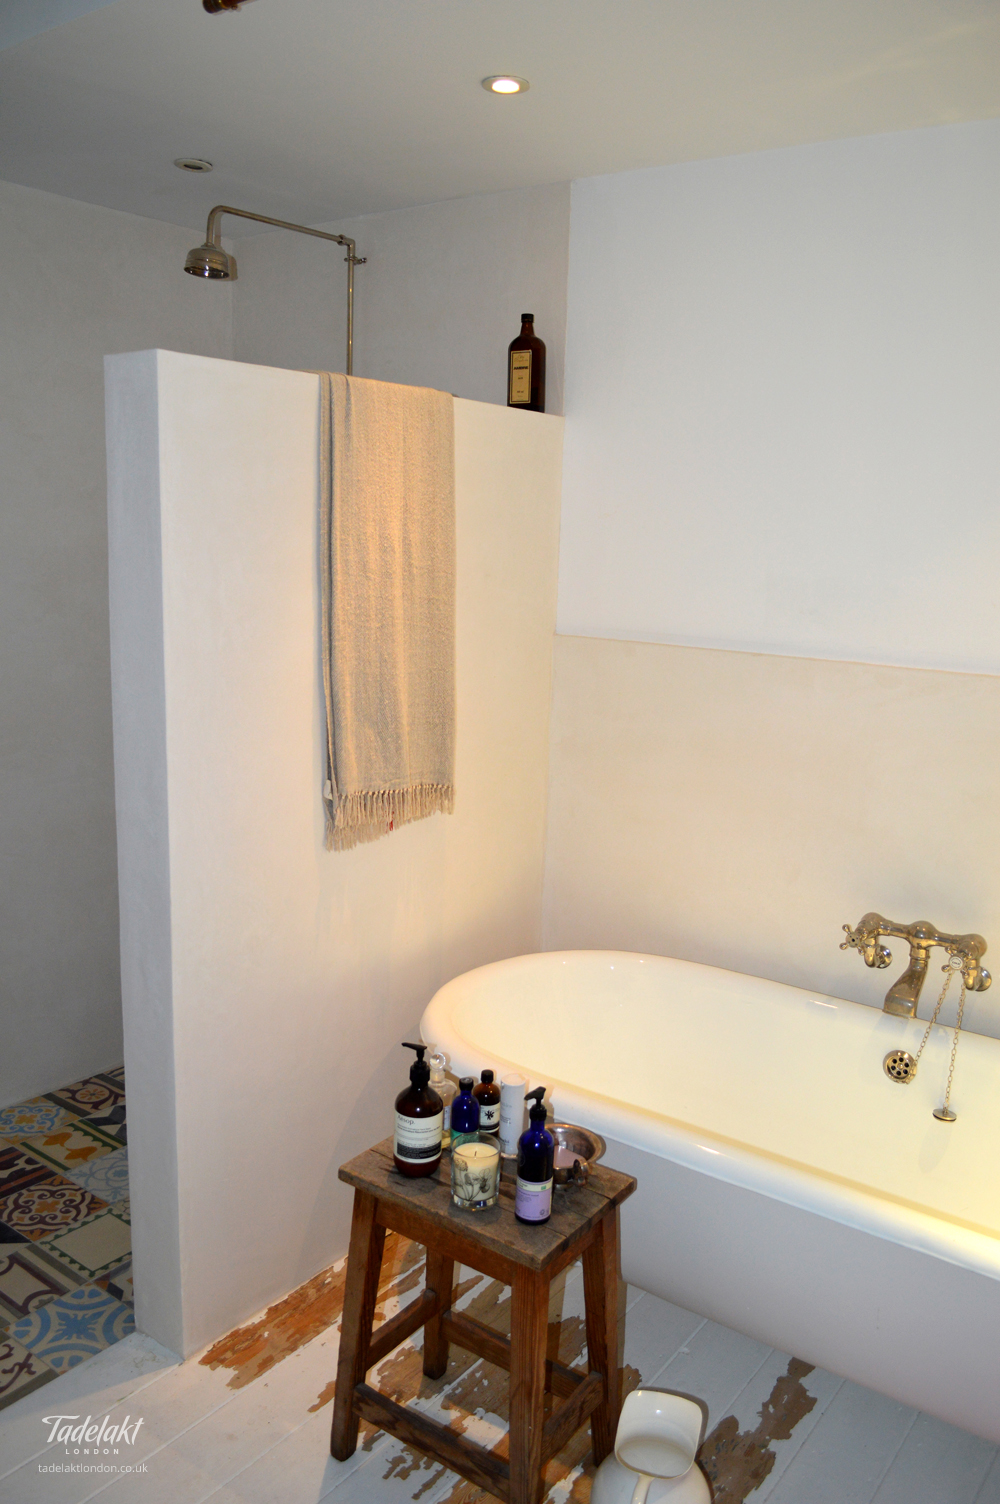 Bathroom moroccan style - Traditional Moroccan Style